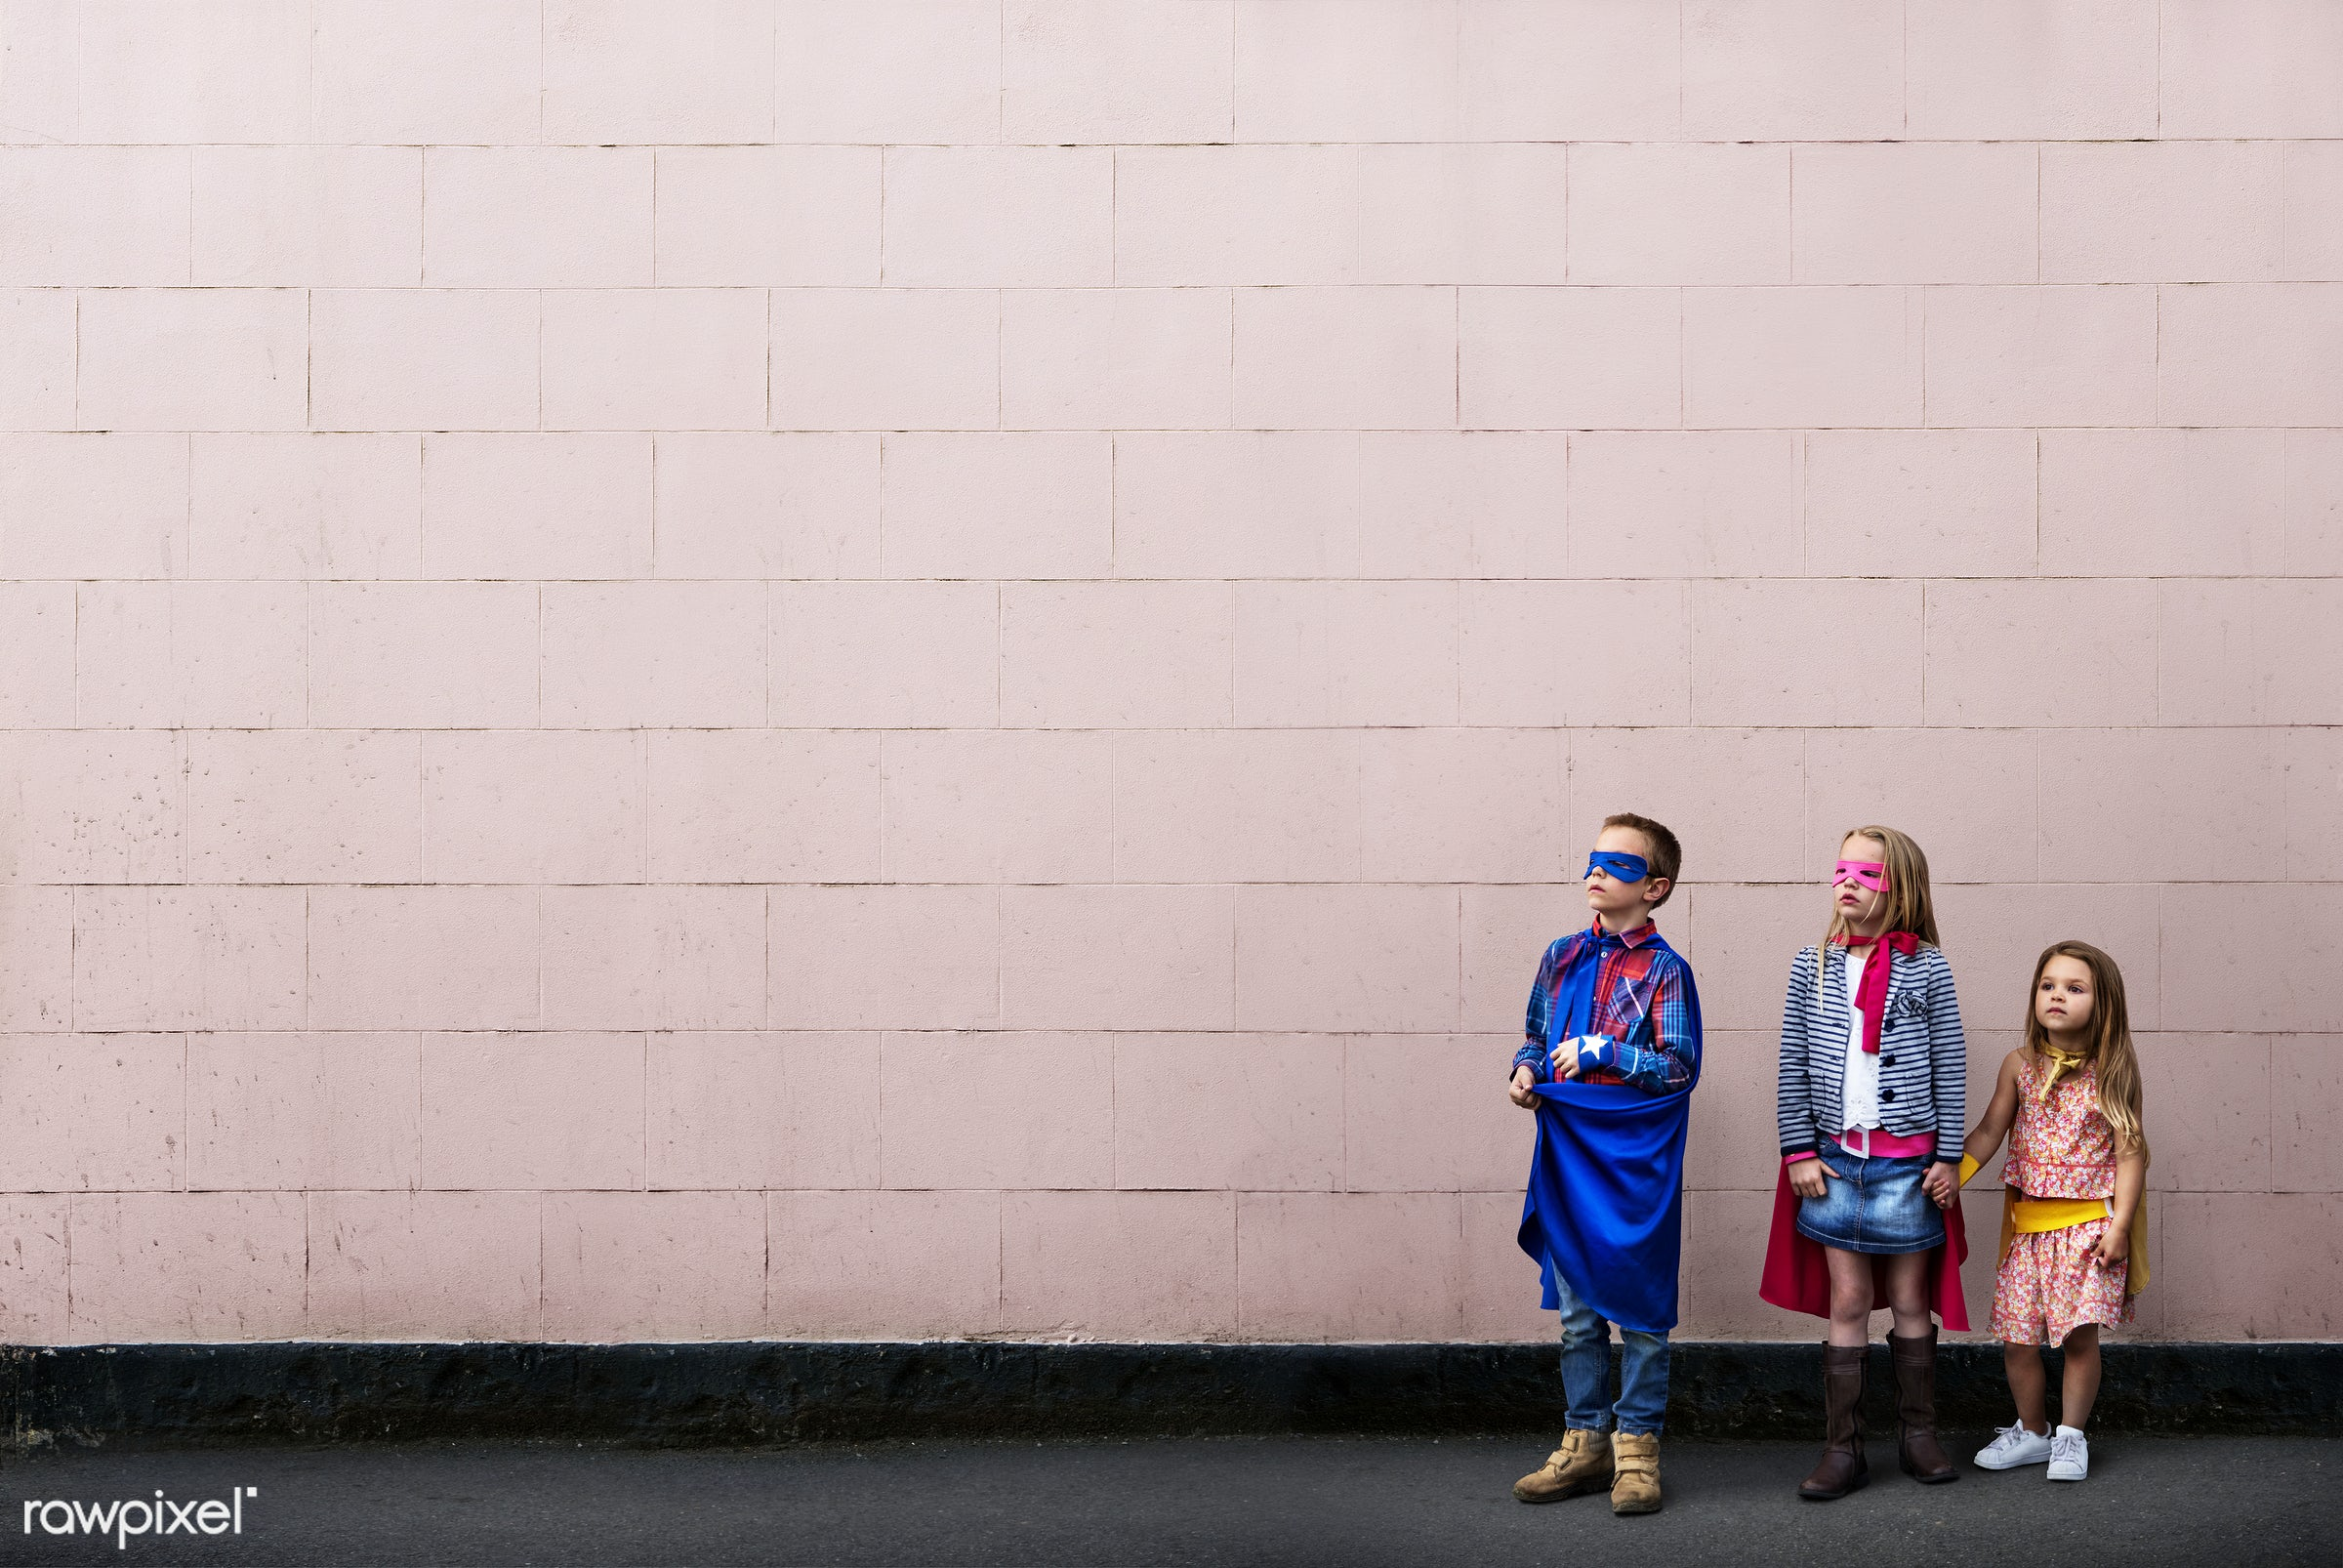 activity, aspirations, brave, brick wall, brother, building, cheerful, child, childhood, colourful, confidence, copy space,...